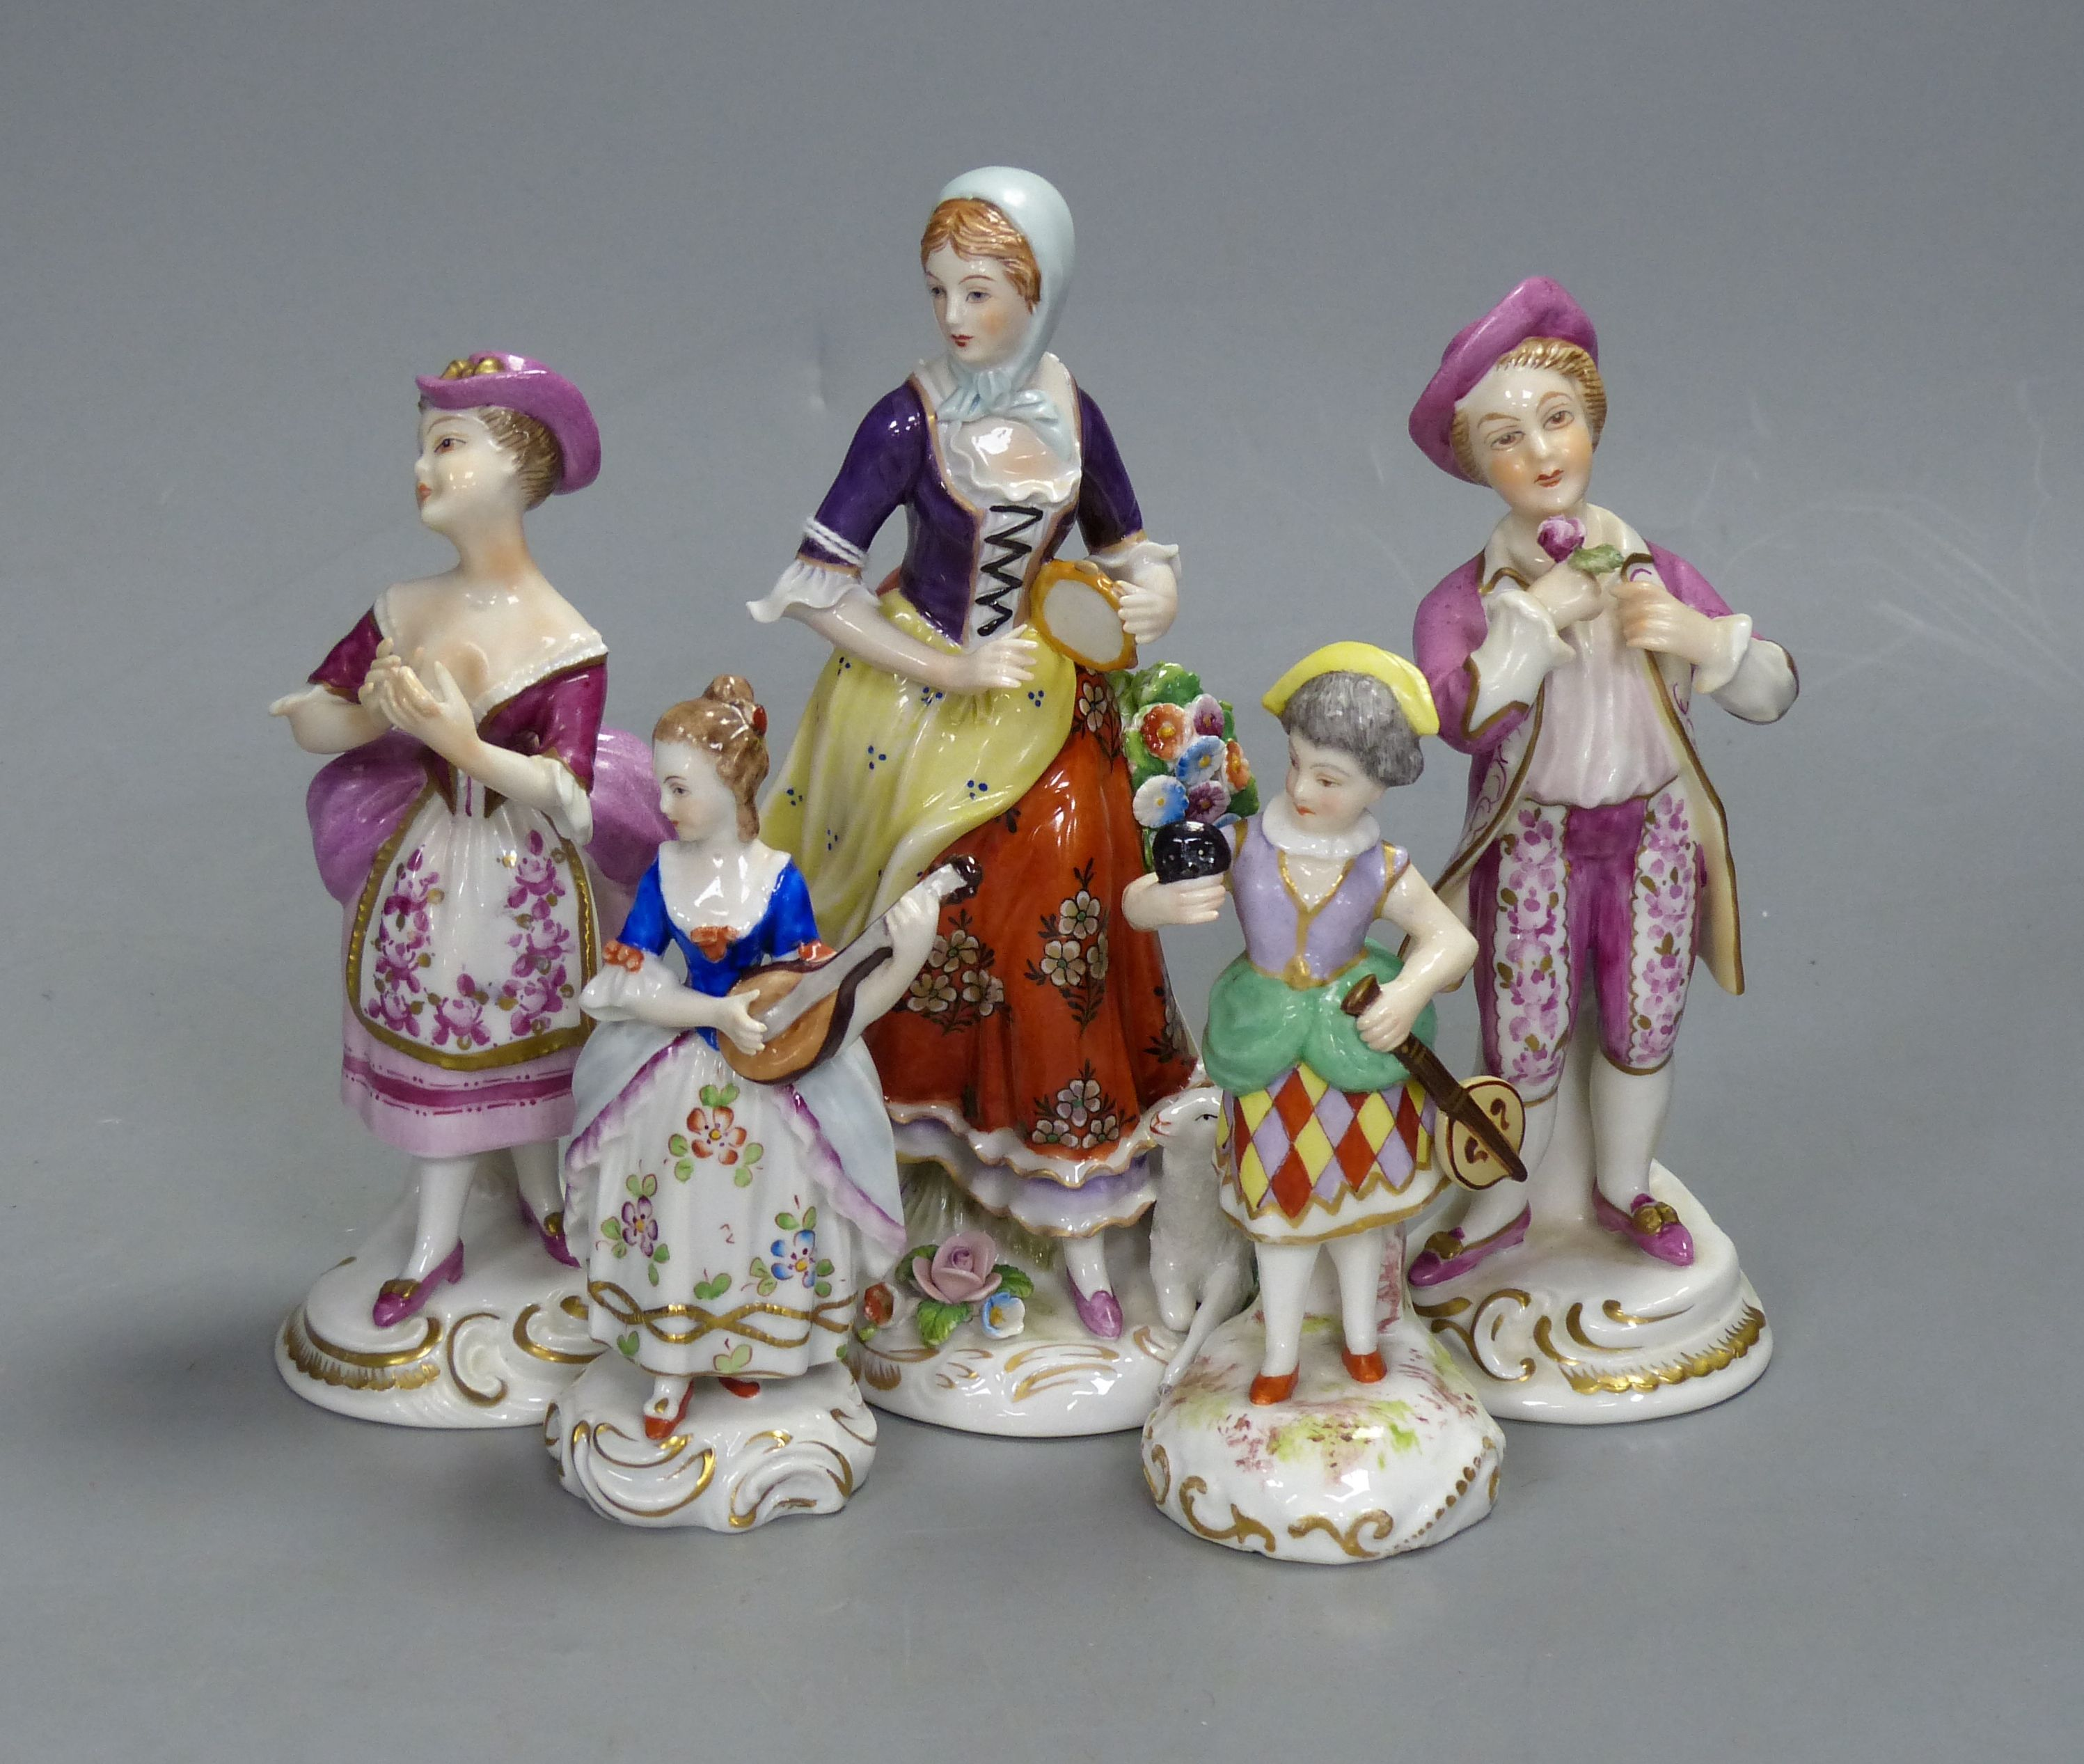 A German porcelain figure of a masked harlequin with stringed instrument and four other Continental